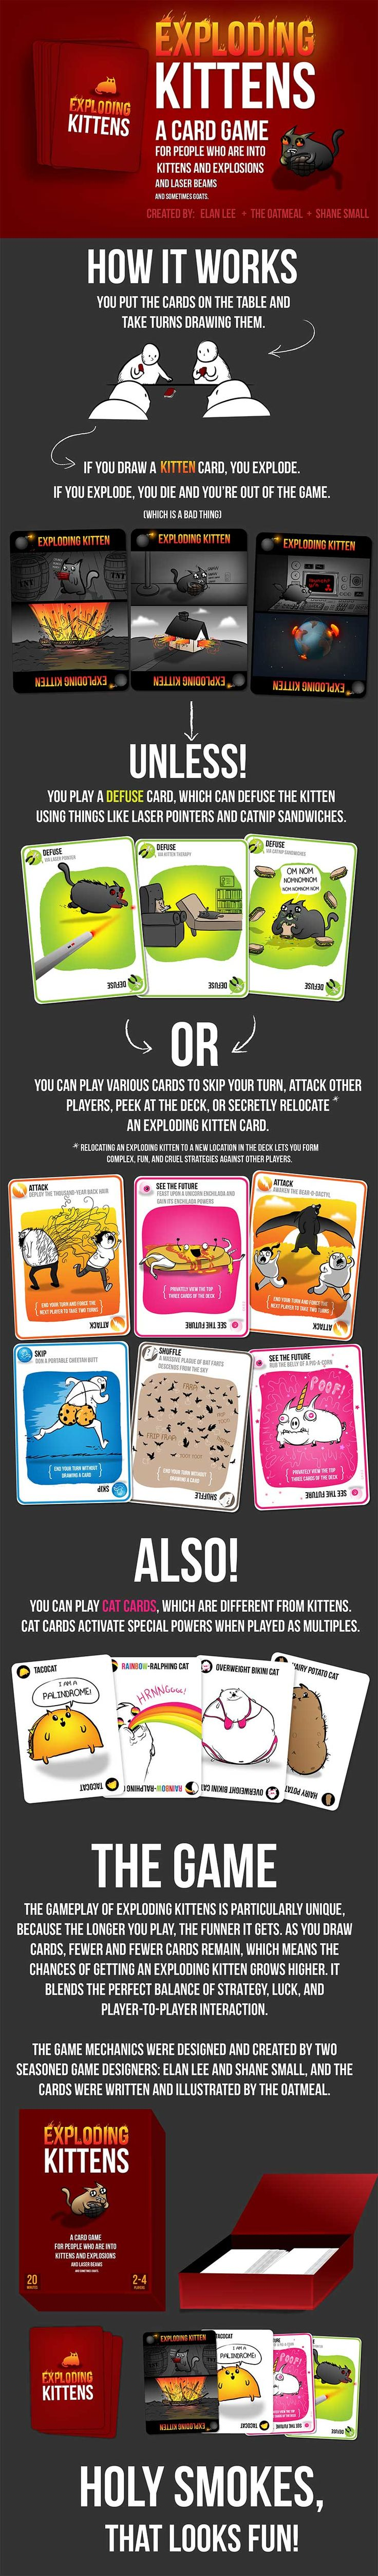 Exploding Kittens Card Game.  ~*~ OMG, I NEED DIS! ~*~